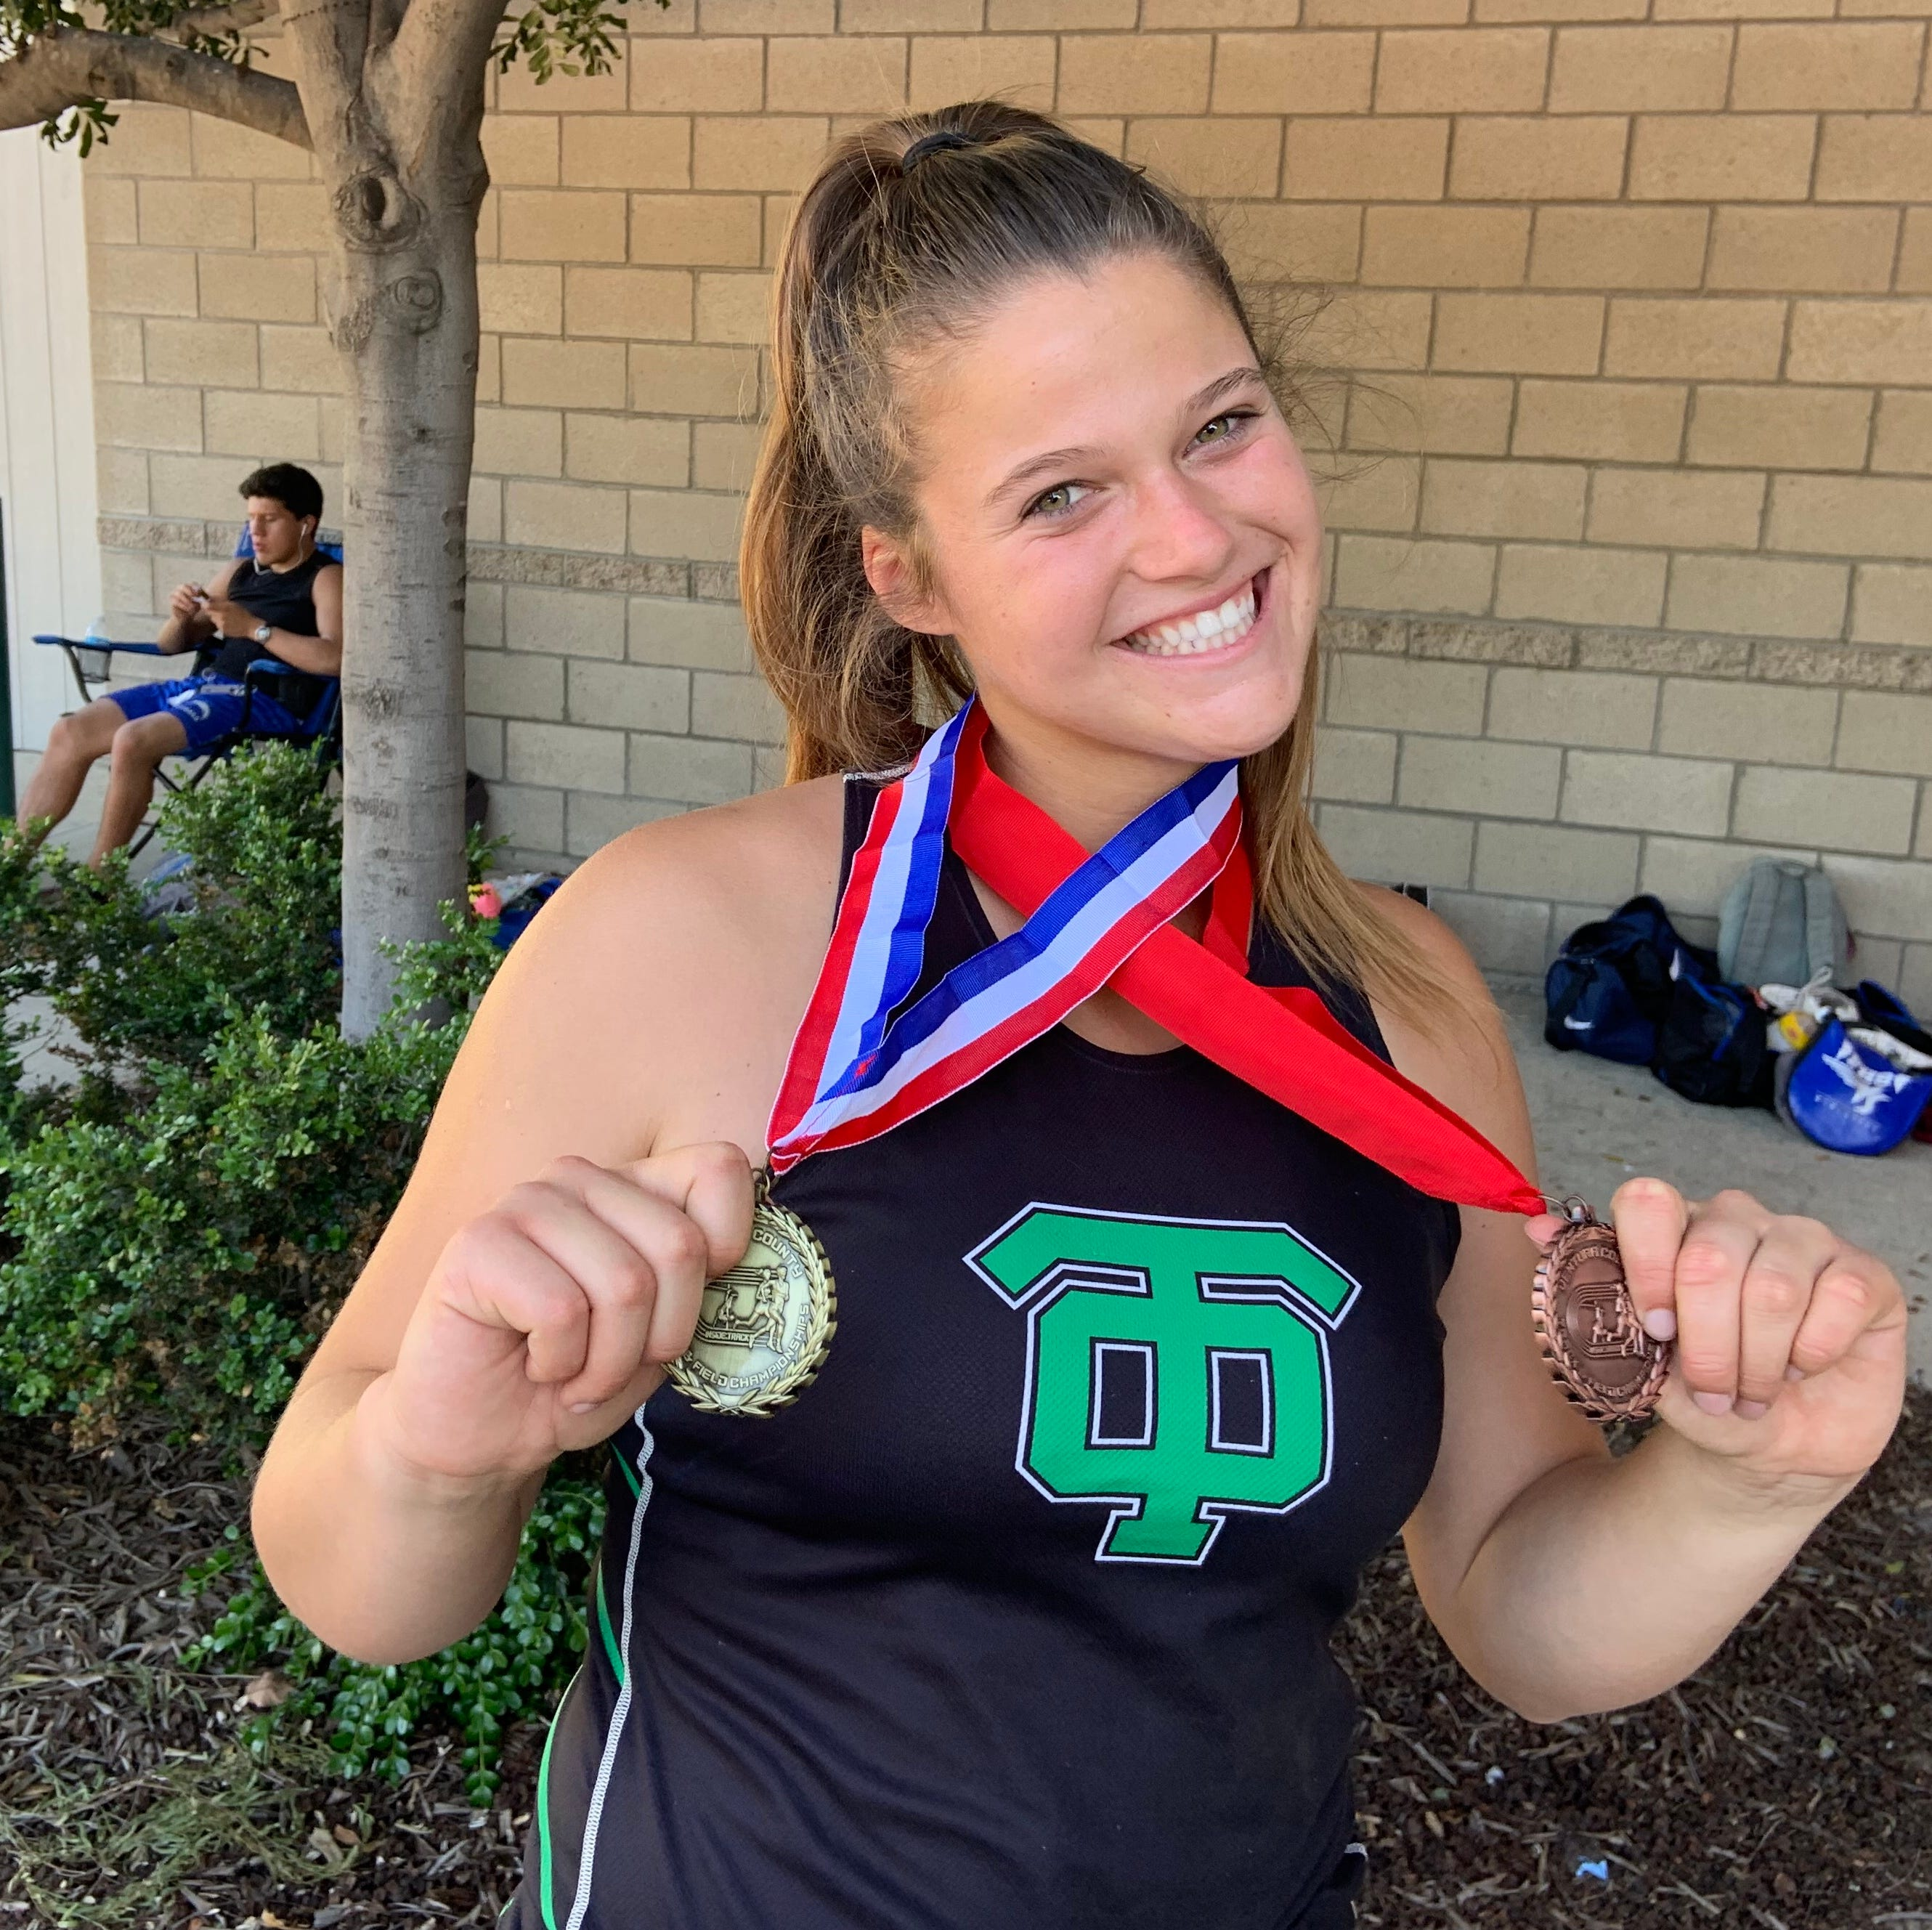 Thousand Oaks High senior Amanda Spear has found her groove and saved her throwing career